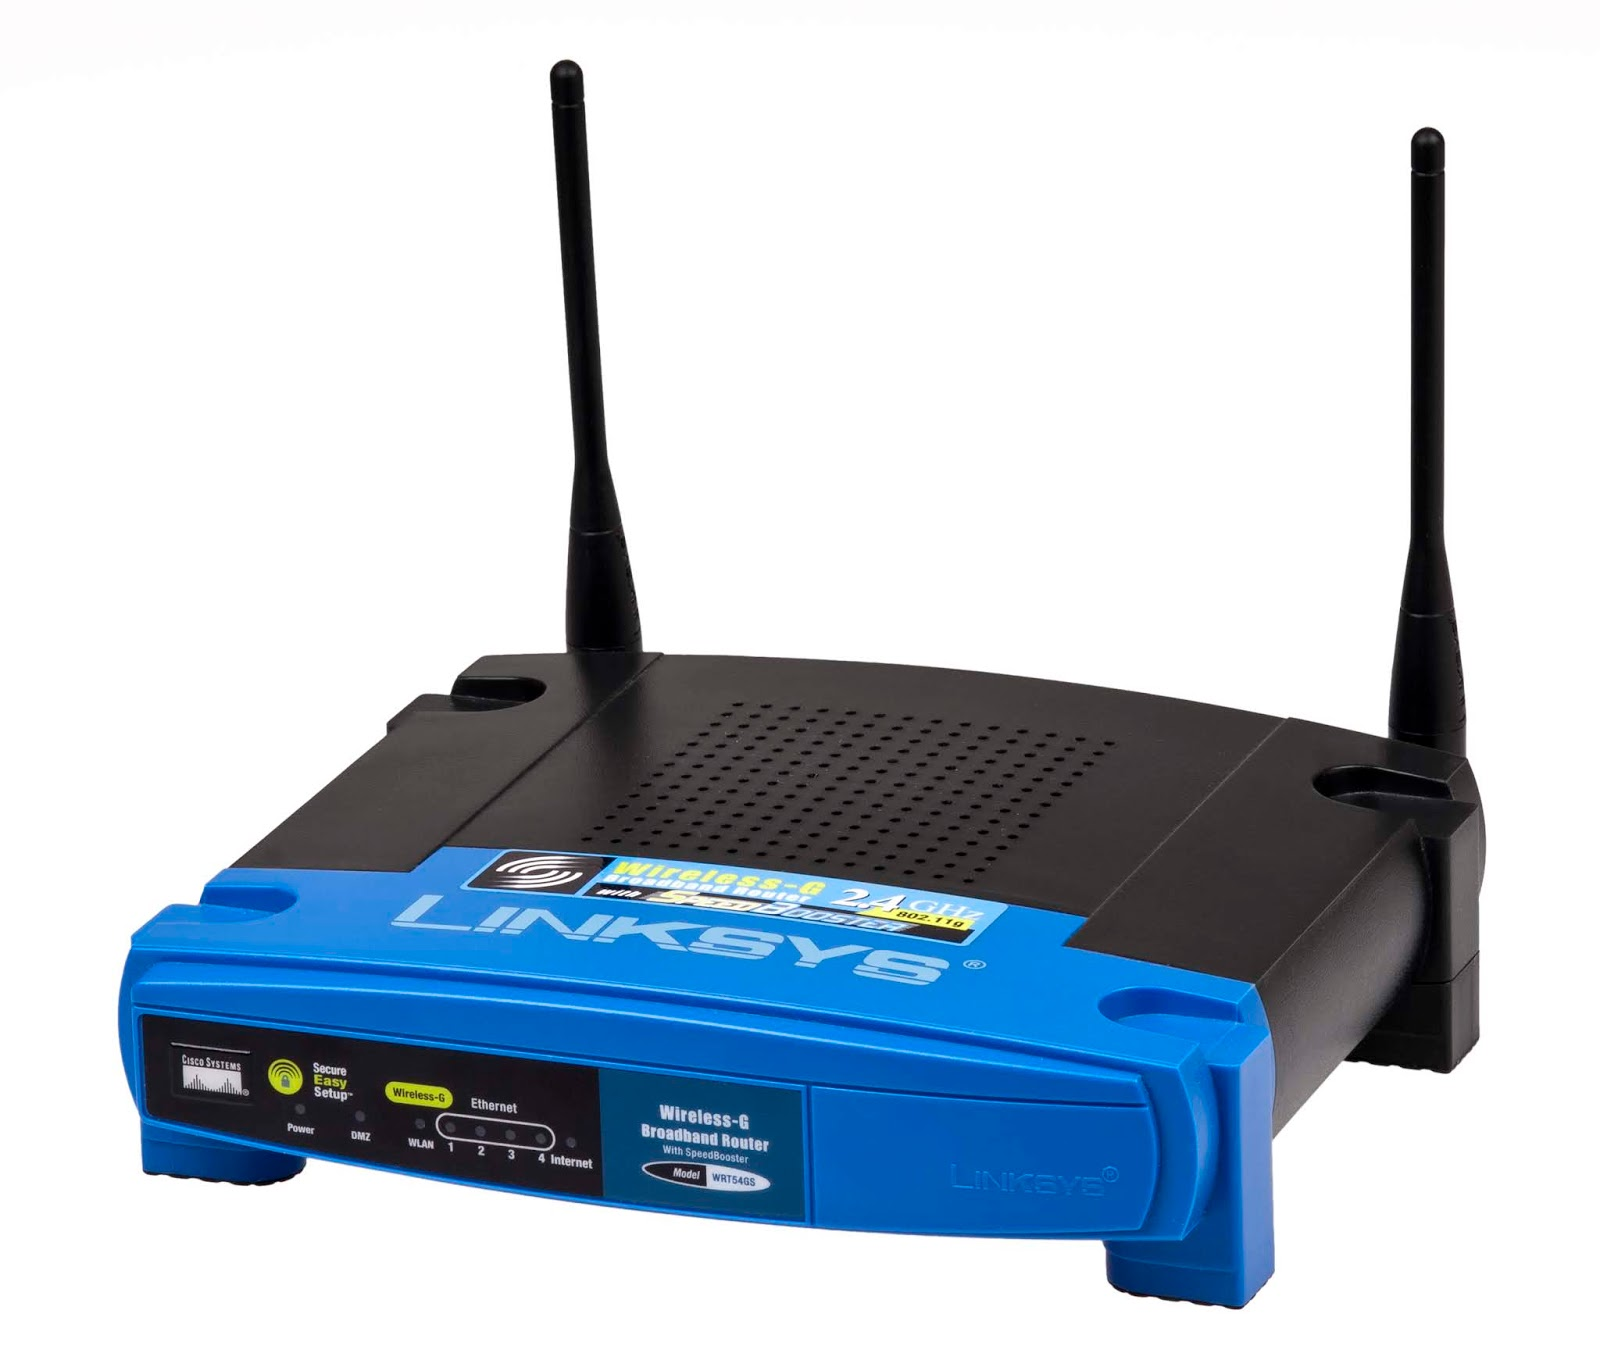 Types Of Wi-Fi Routers